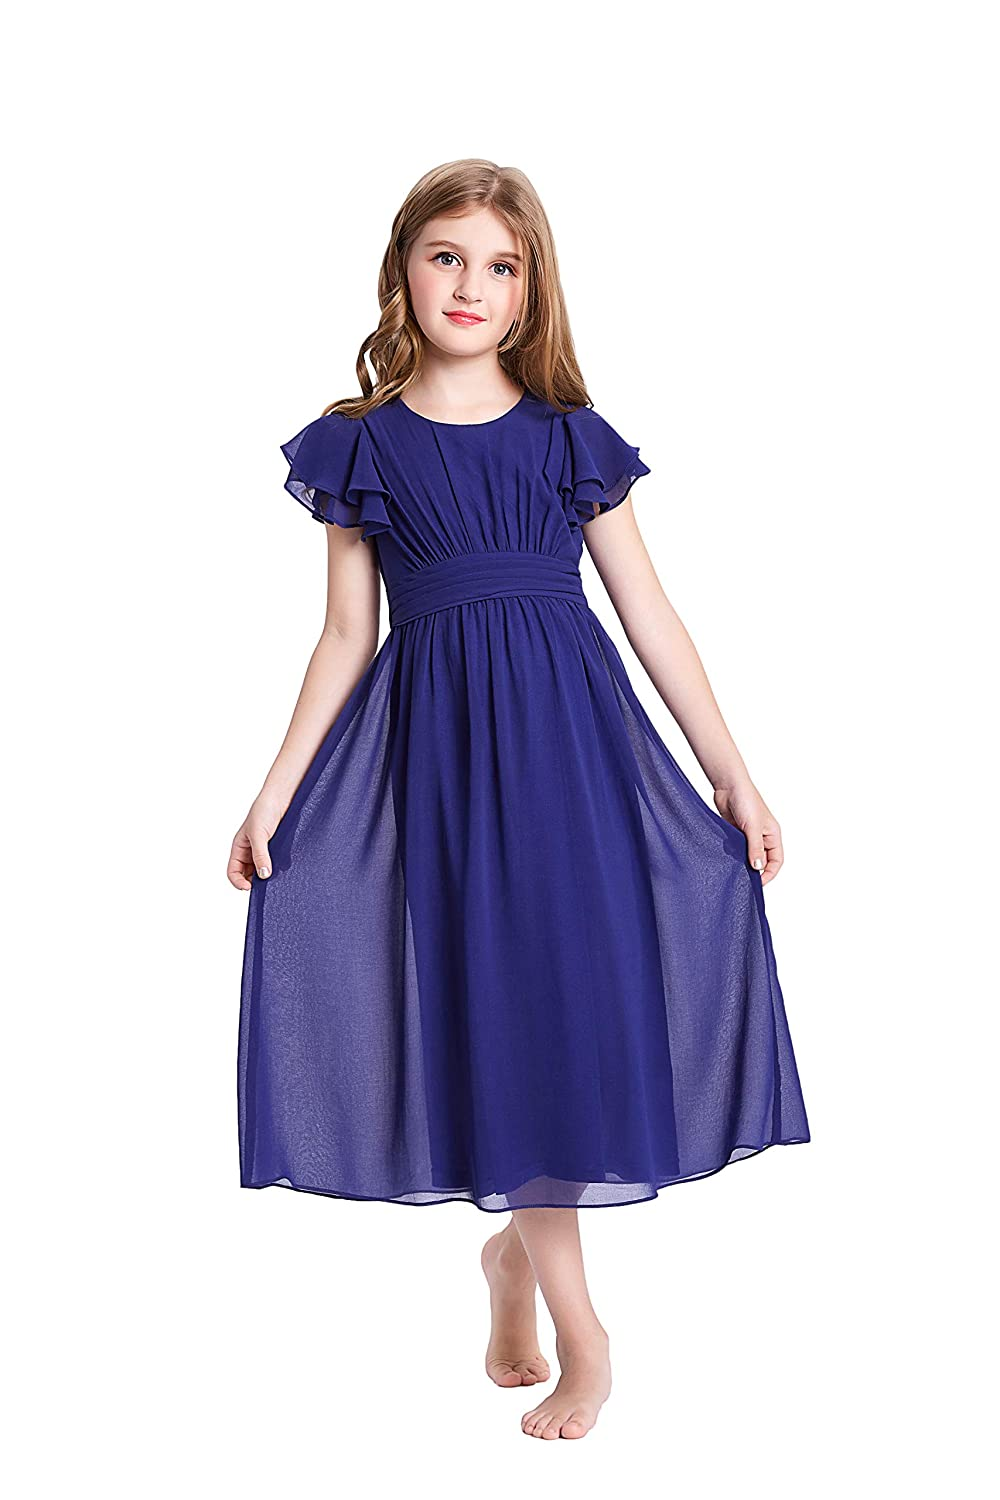 d4ba7b30b884 Amazon.com  GRACE KARIN Girls Short Sleeve Chiffon Dresses with ...